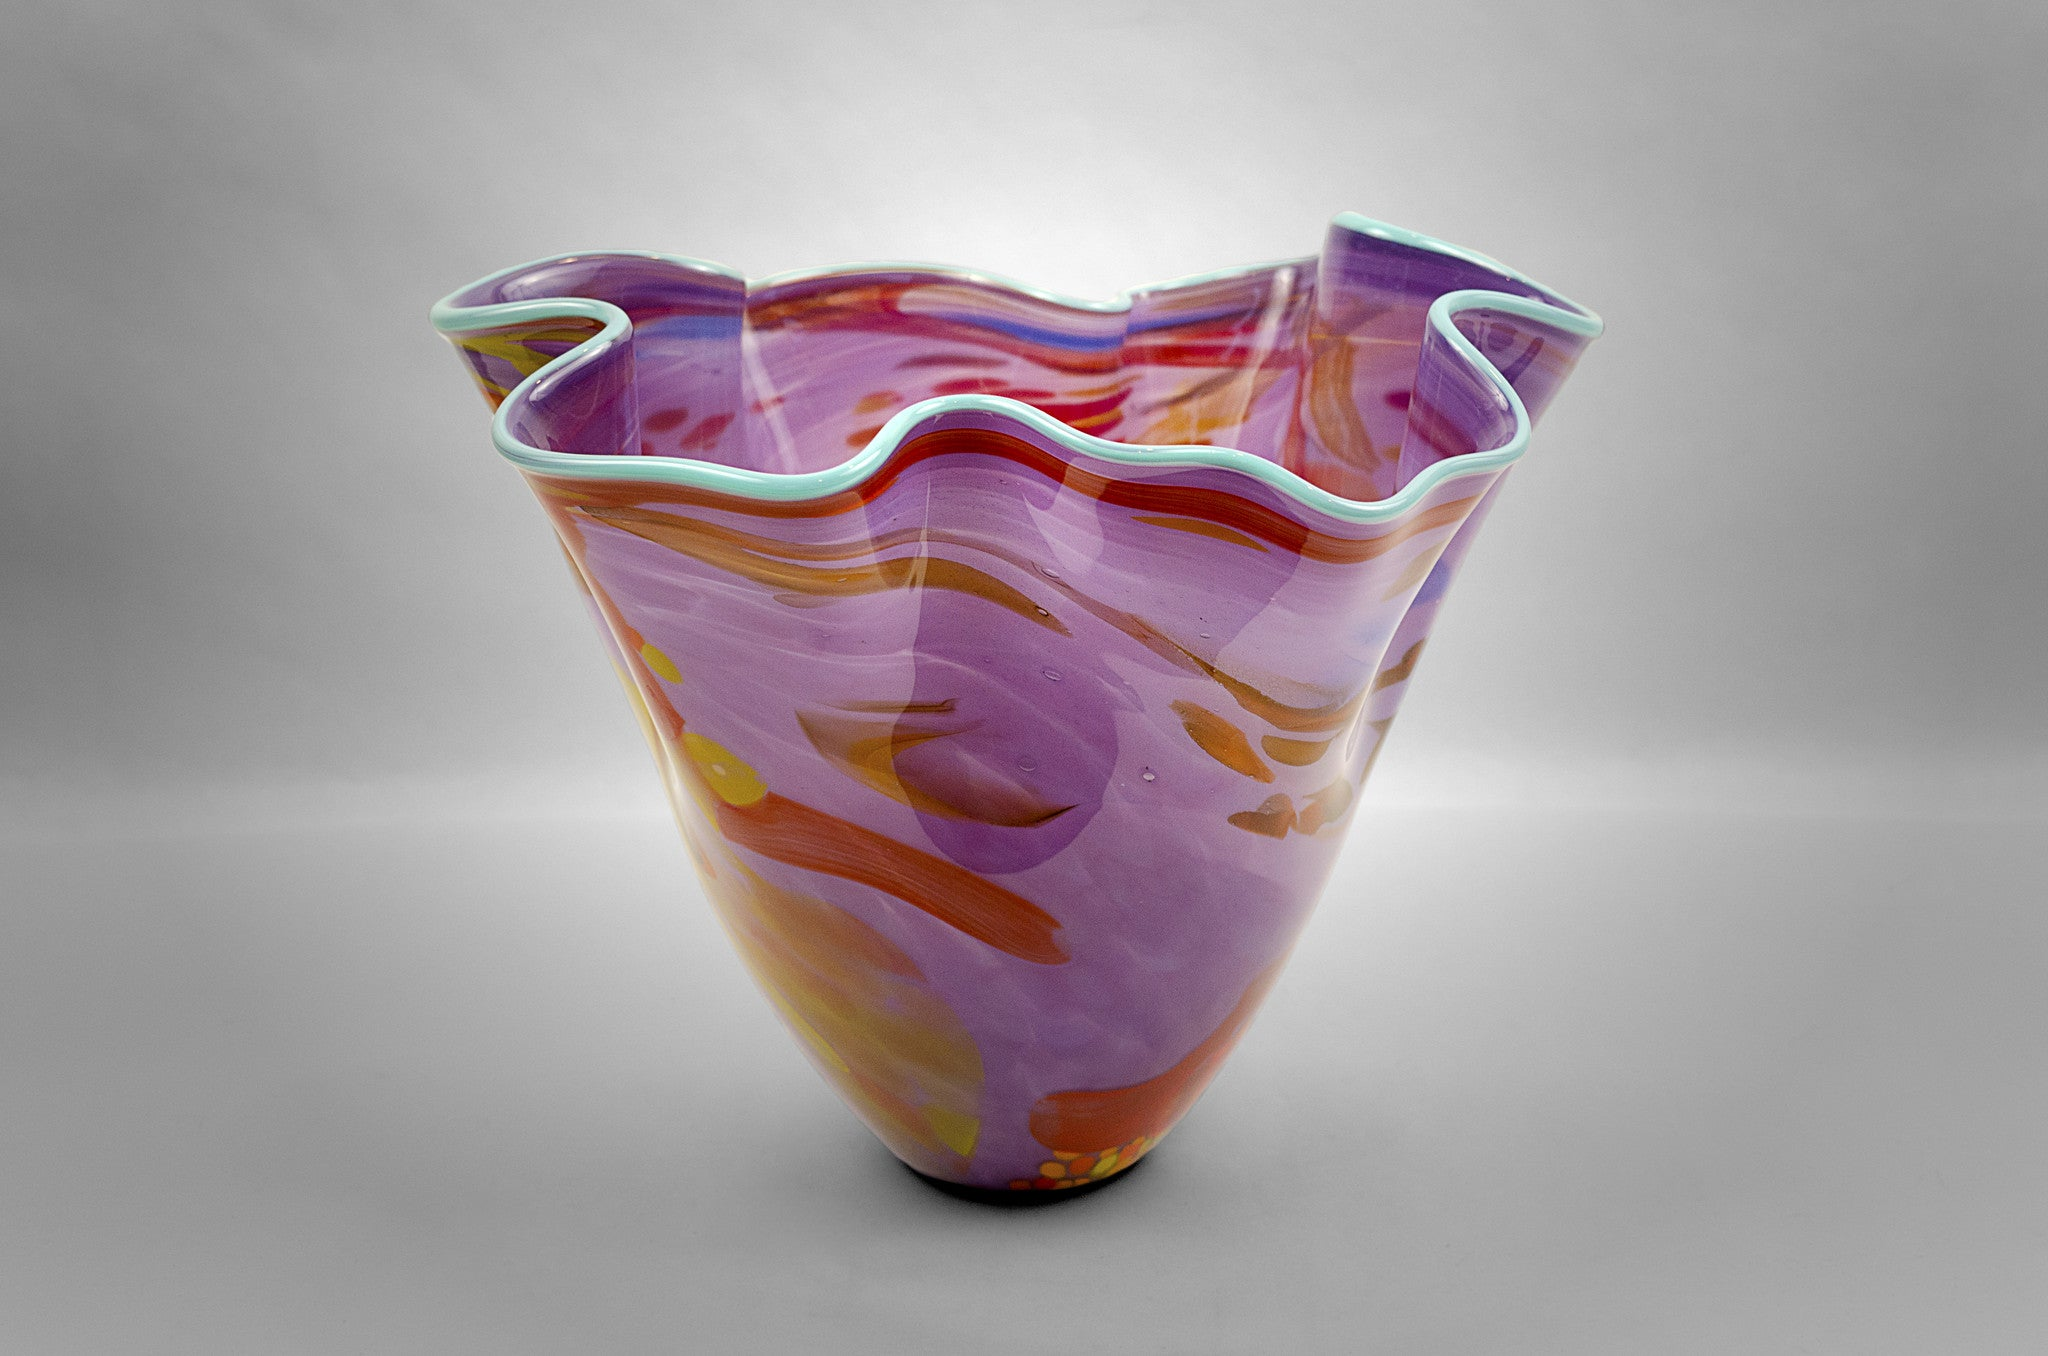 Fluted bowl / vase with broken shards of recycled glass and purple base color and light blue rim